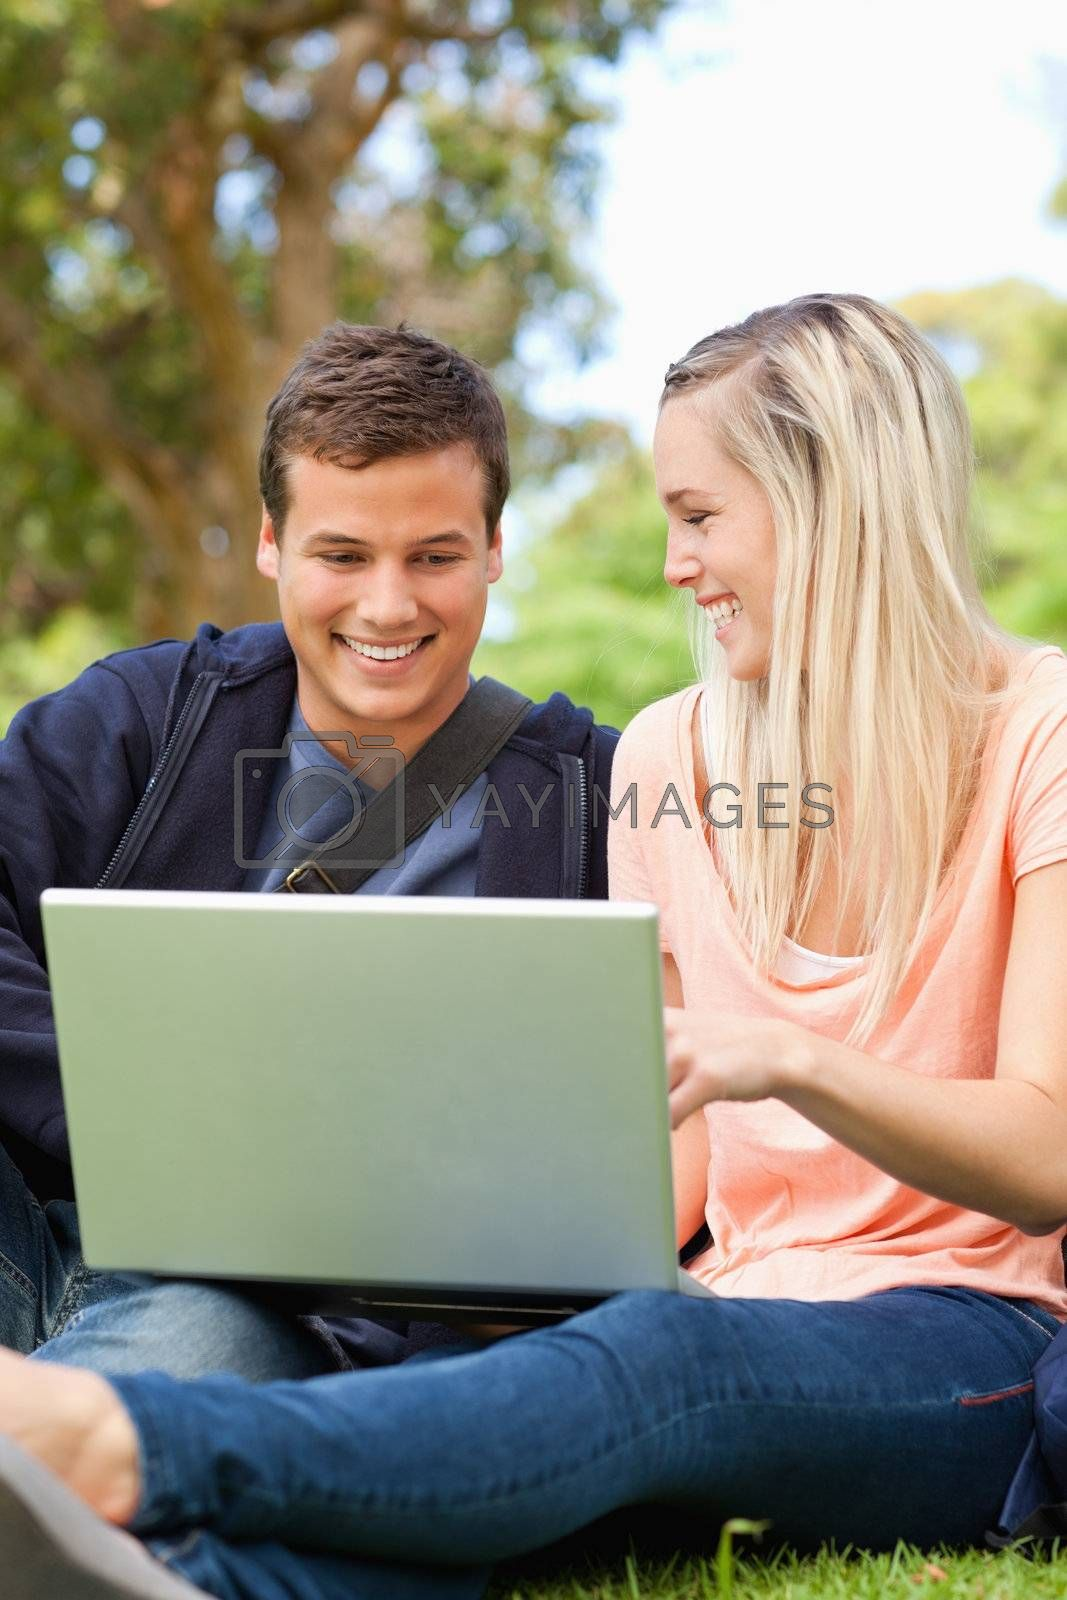 Close-up of young people laughing while sitting with a laptop in a park